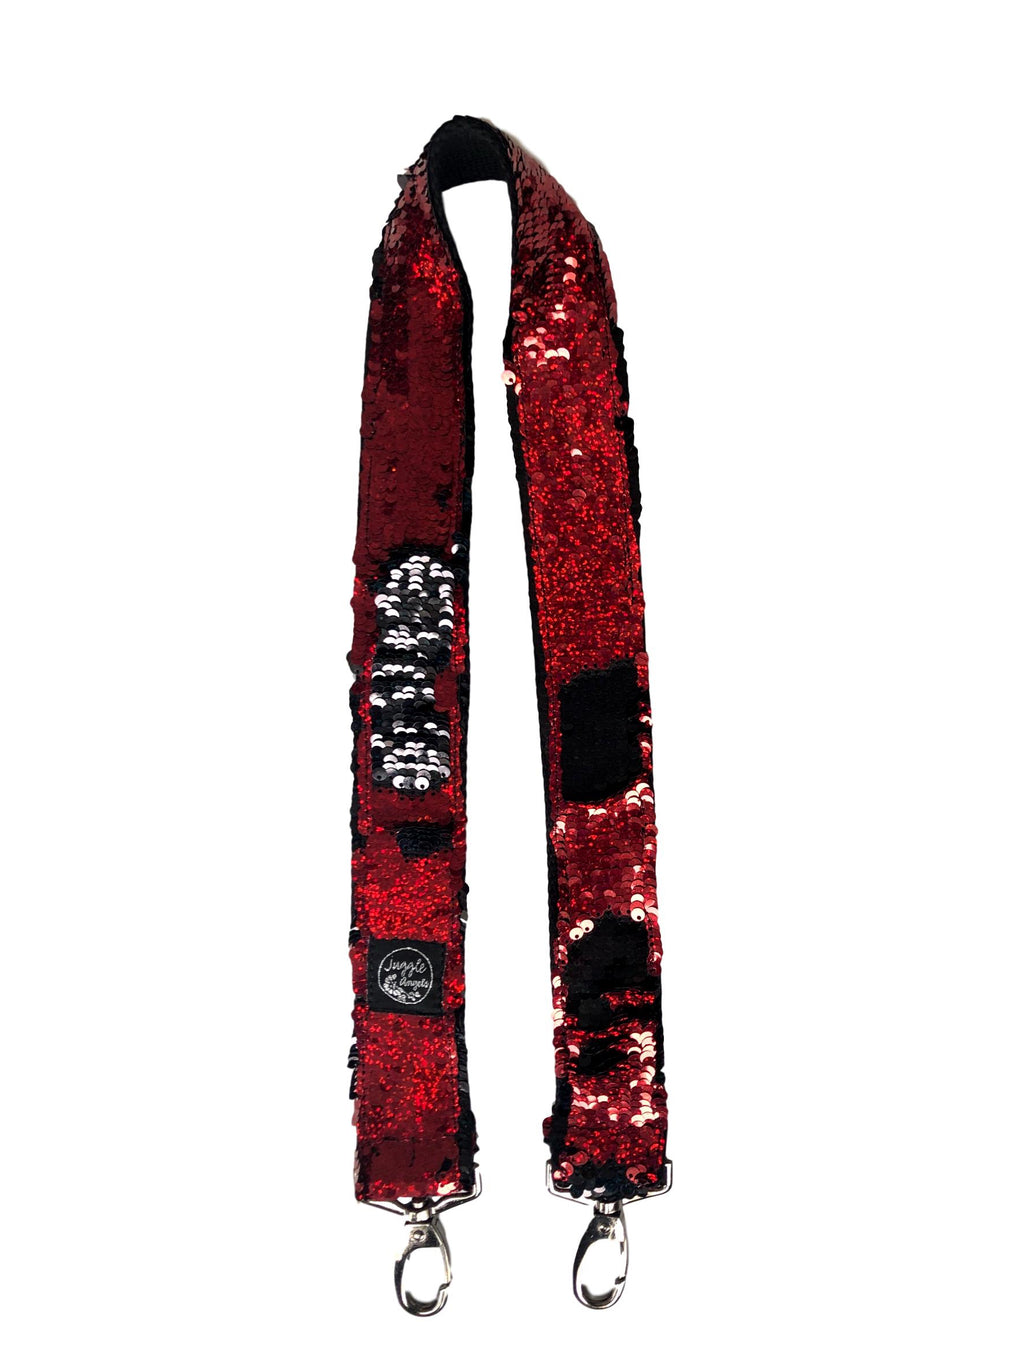 Red Black handbag Strap